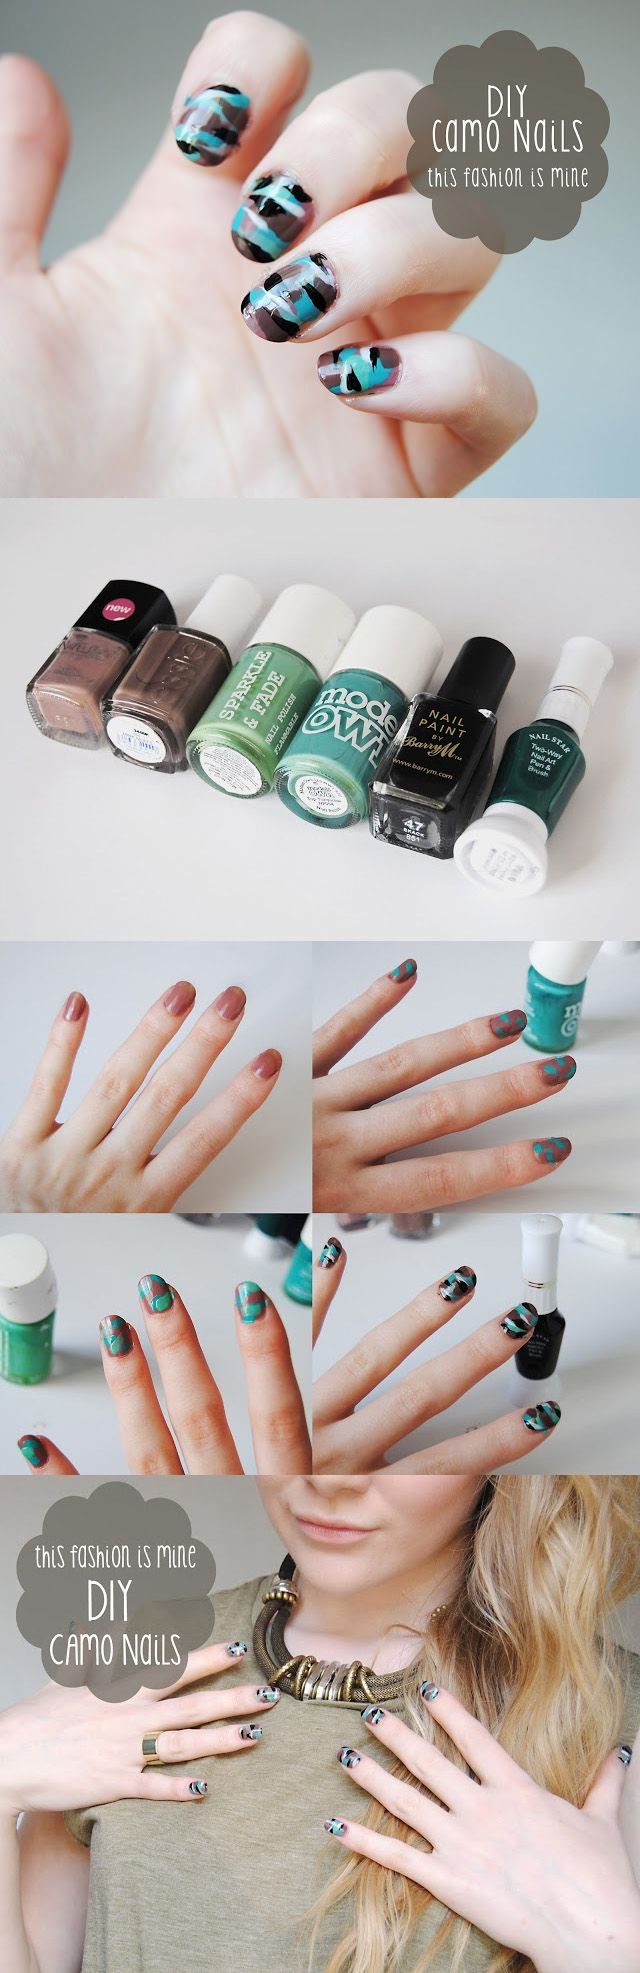 32 best Camo nails! images on Pinterest | Camo nails, Camouflage ...